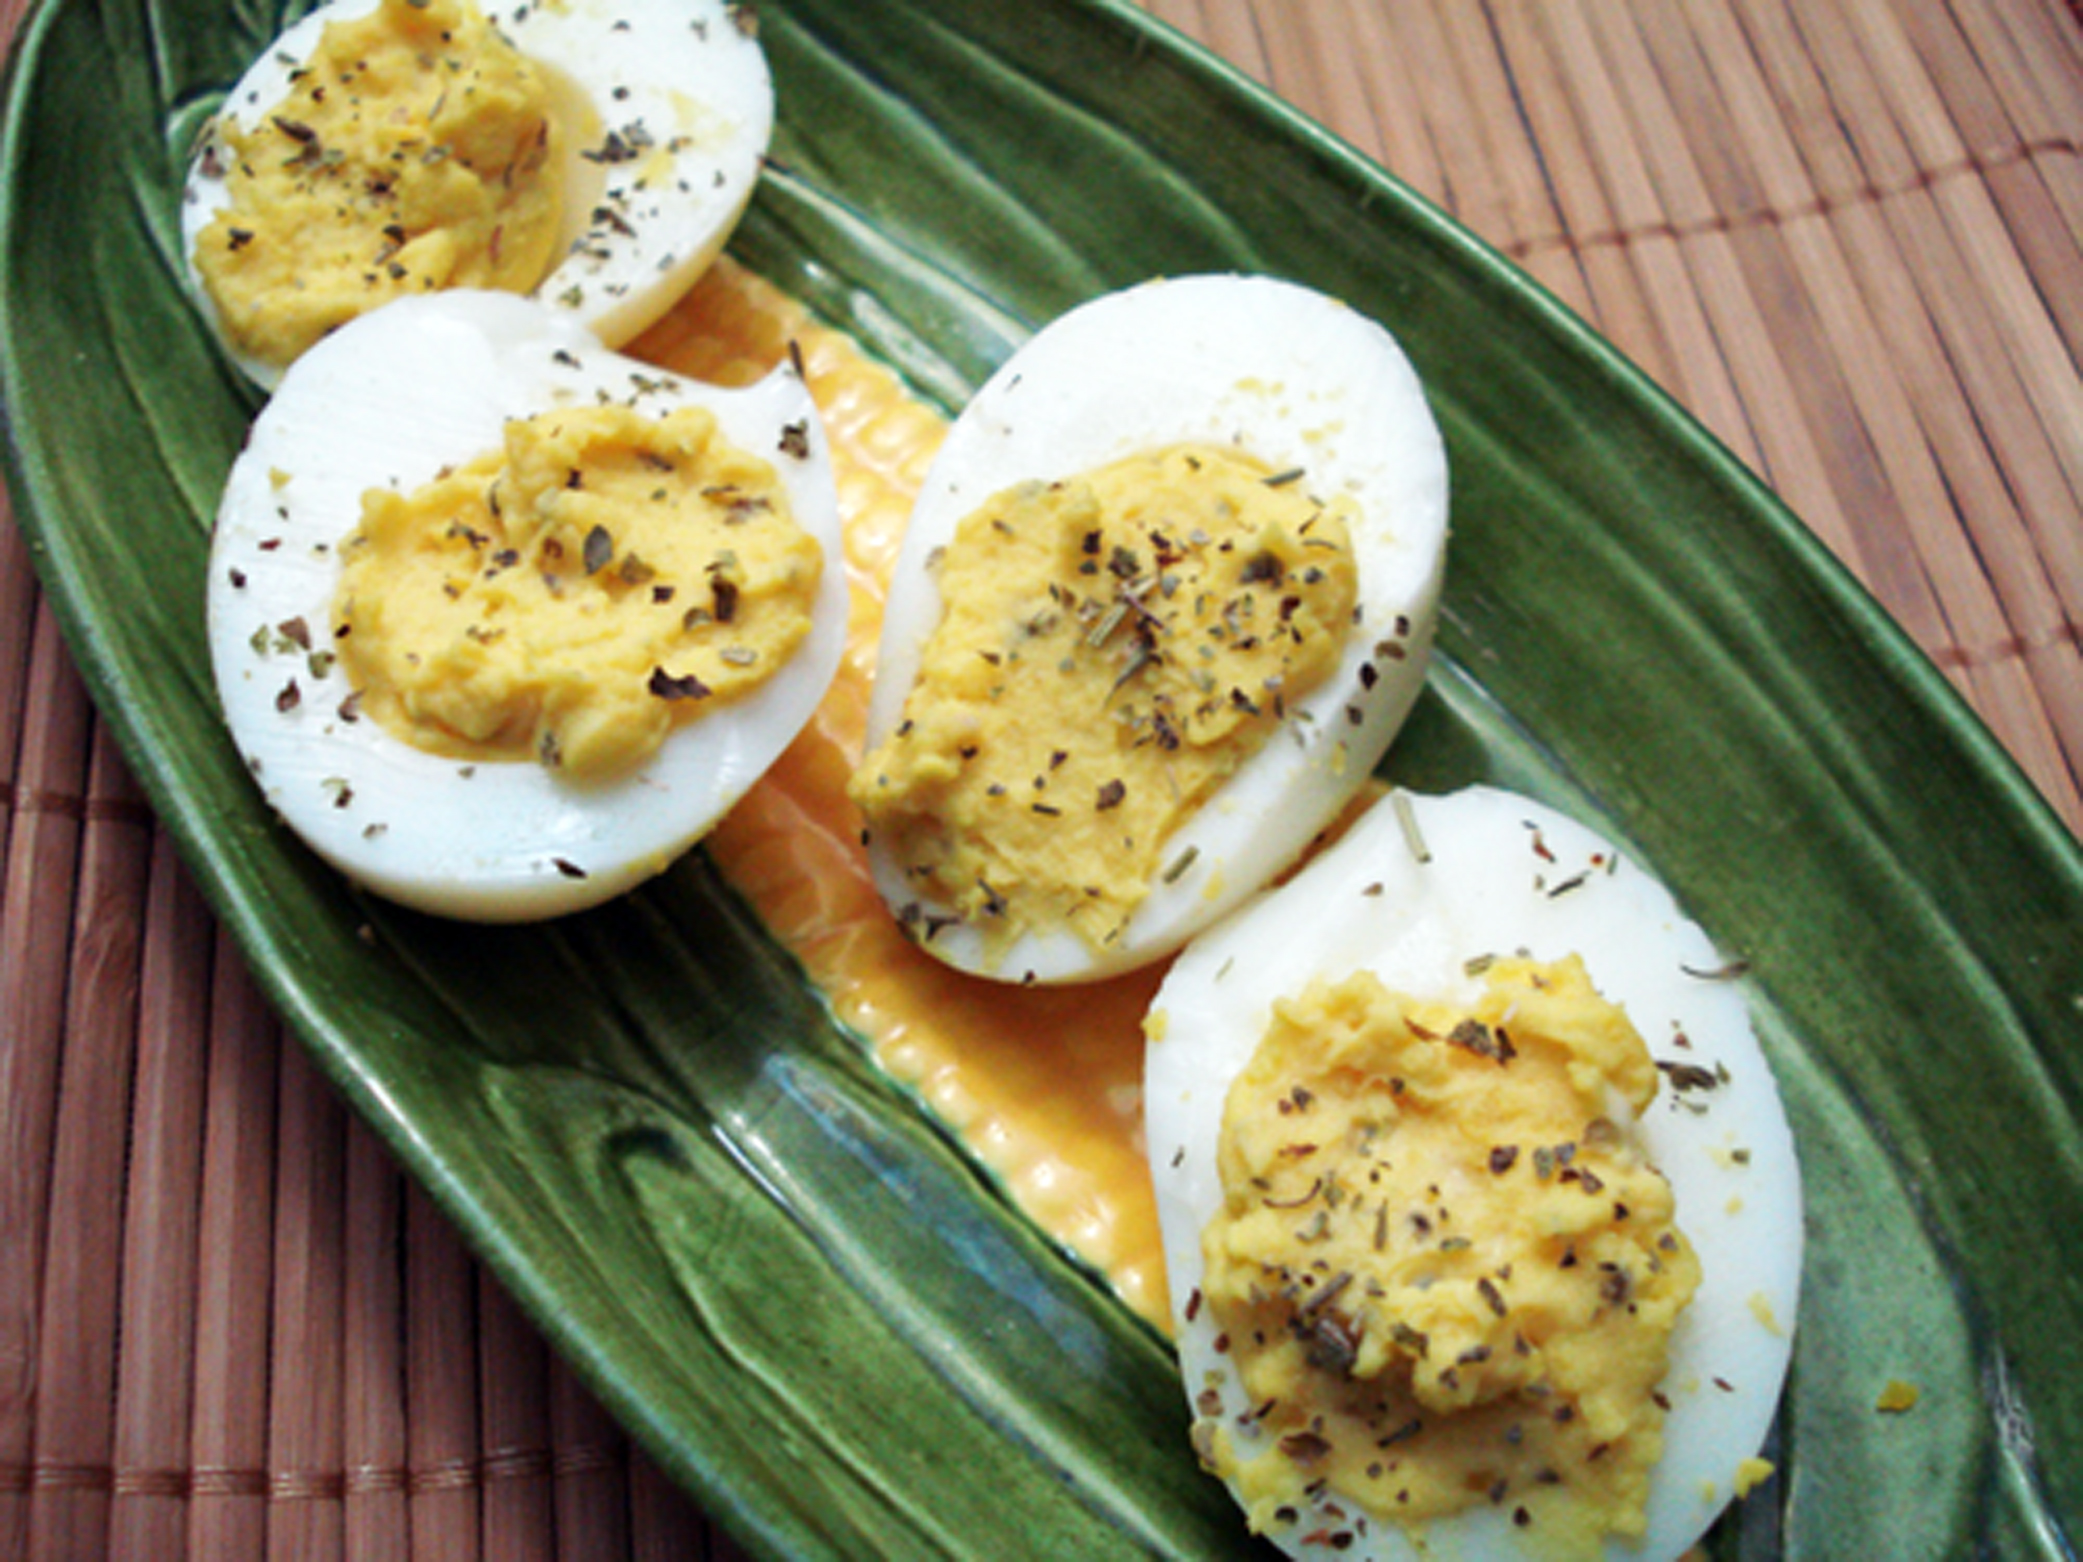 Two takes on Deviled Eggs: Chipotle Bacon and Garlic & Herb ...